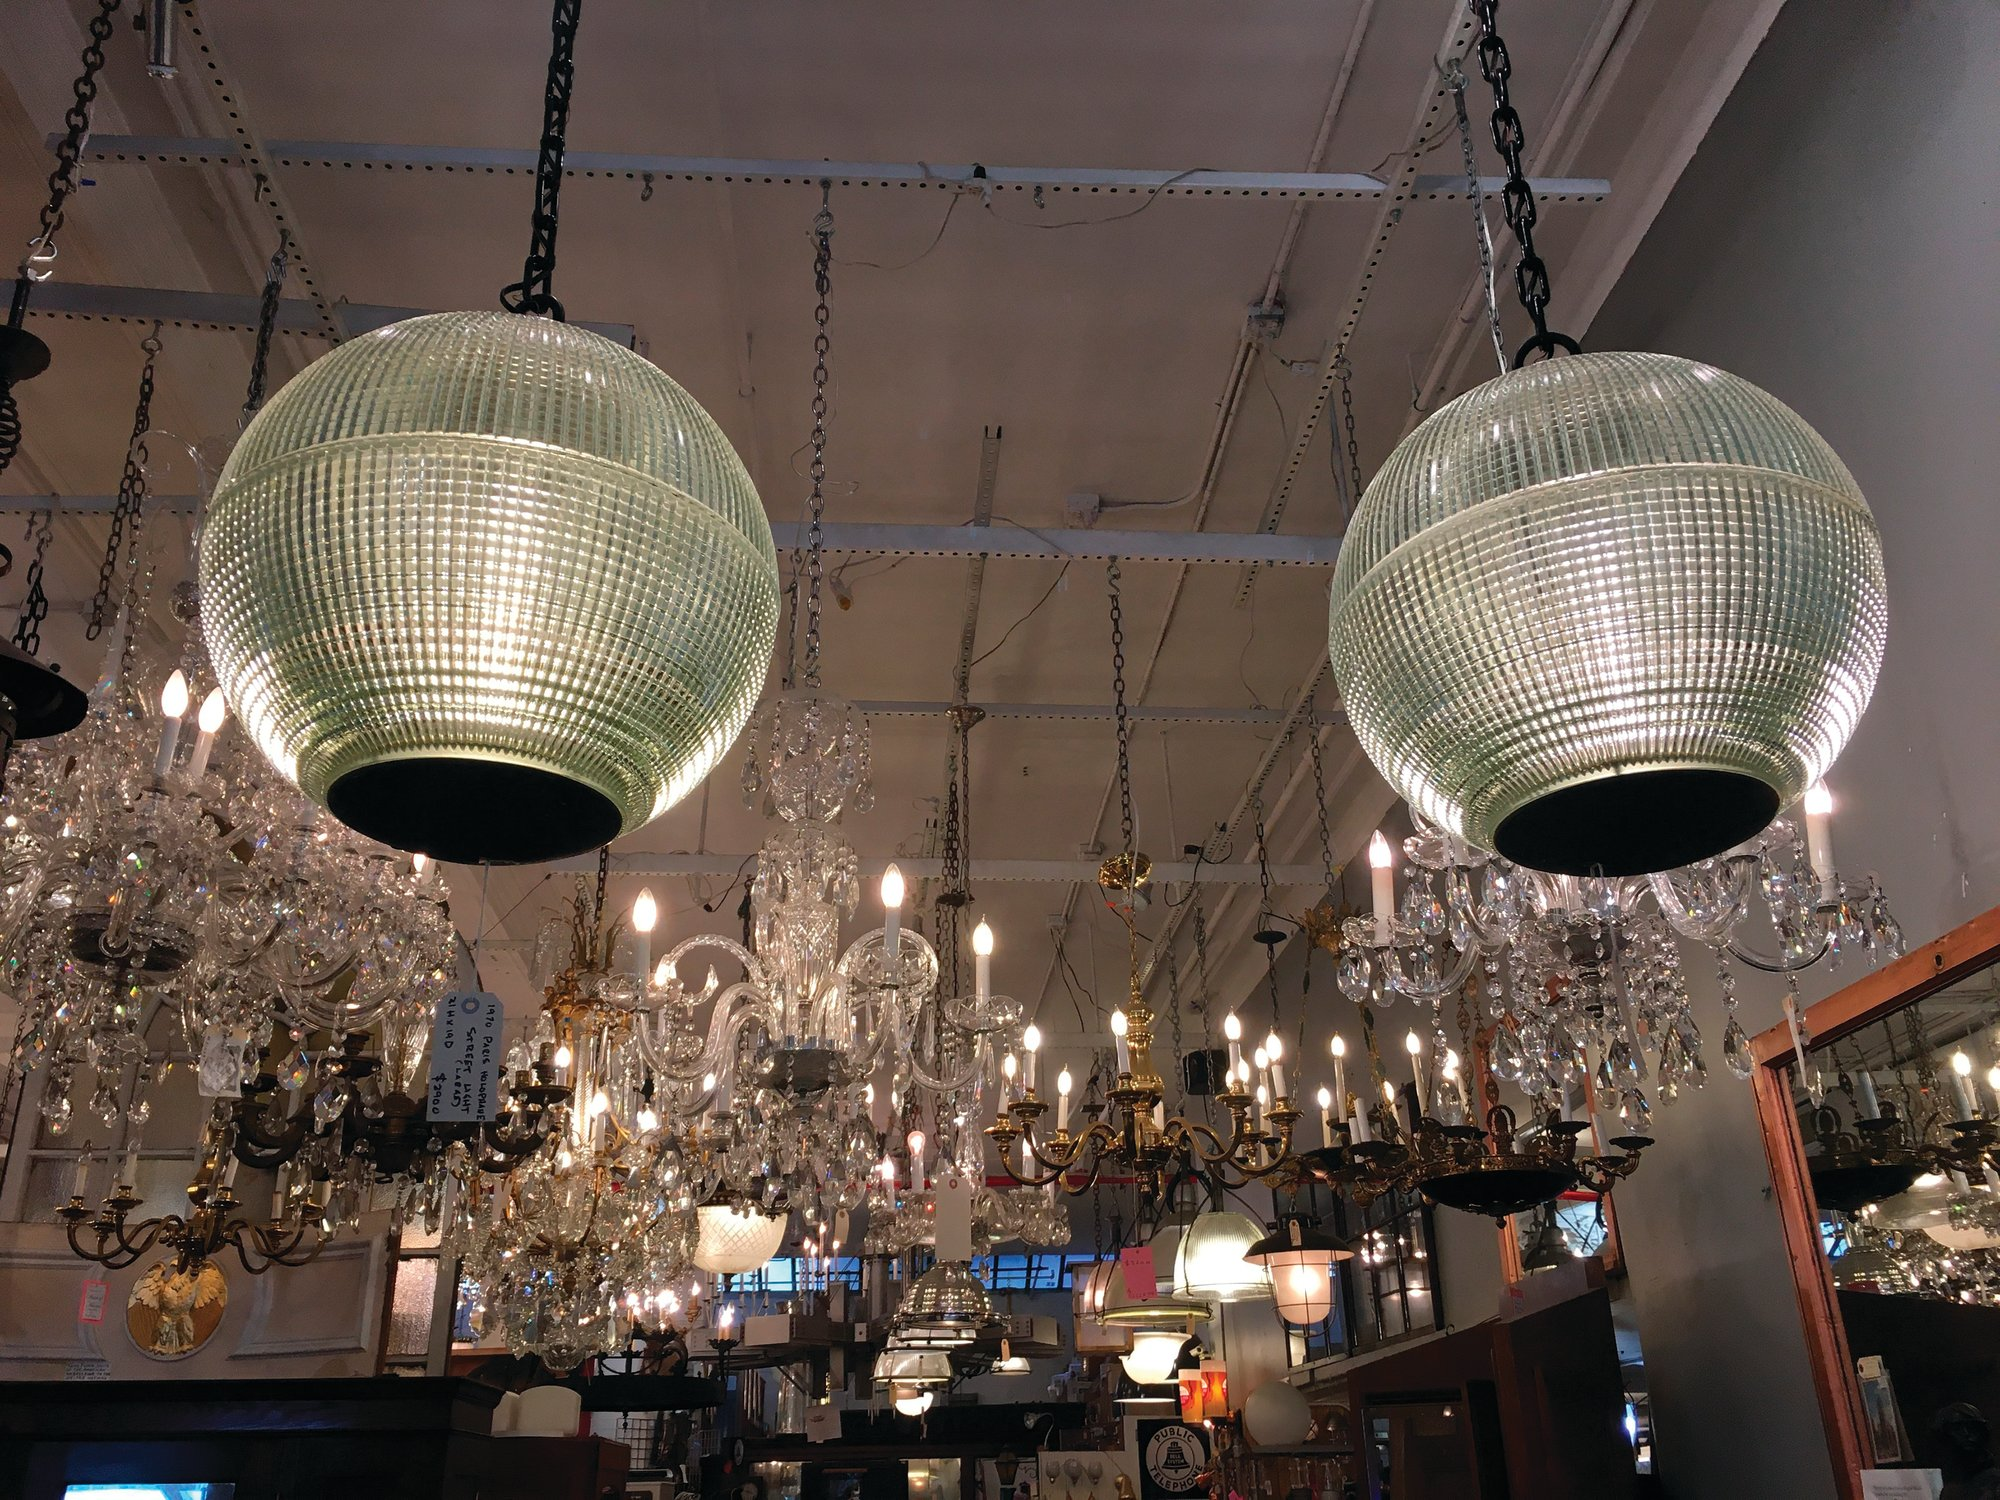 Seen are two light fixtures reconfigured as pendant lamps from Paris street lamps, available for sale at Olde Good Things salvage store in New York.